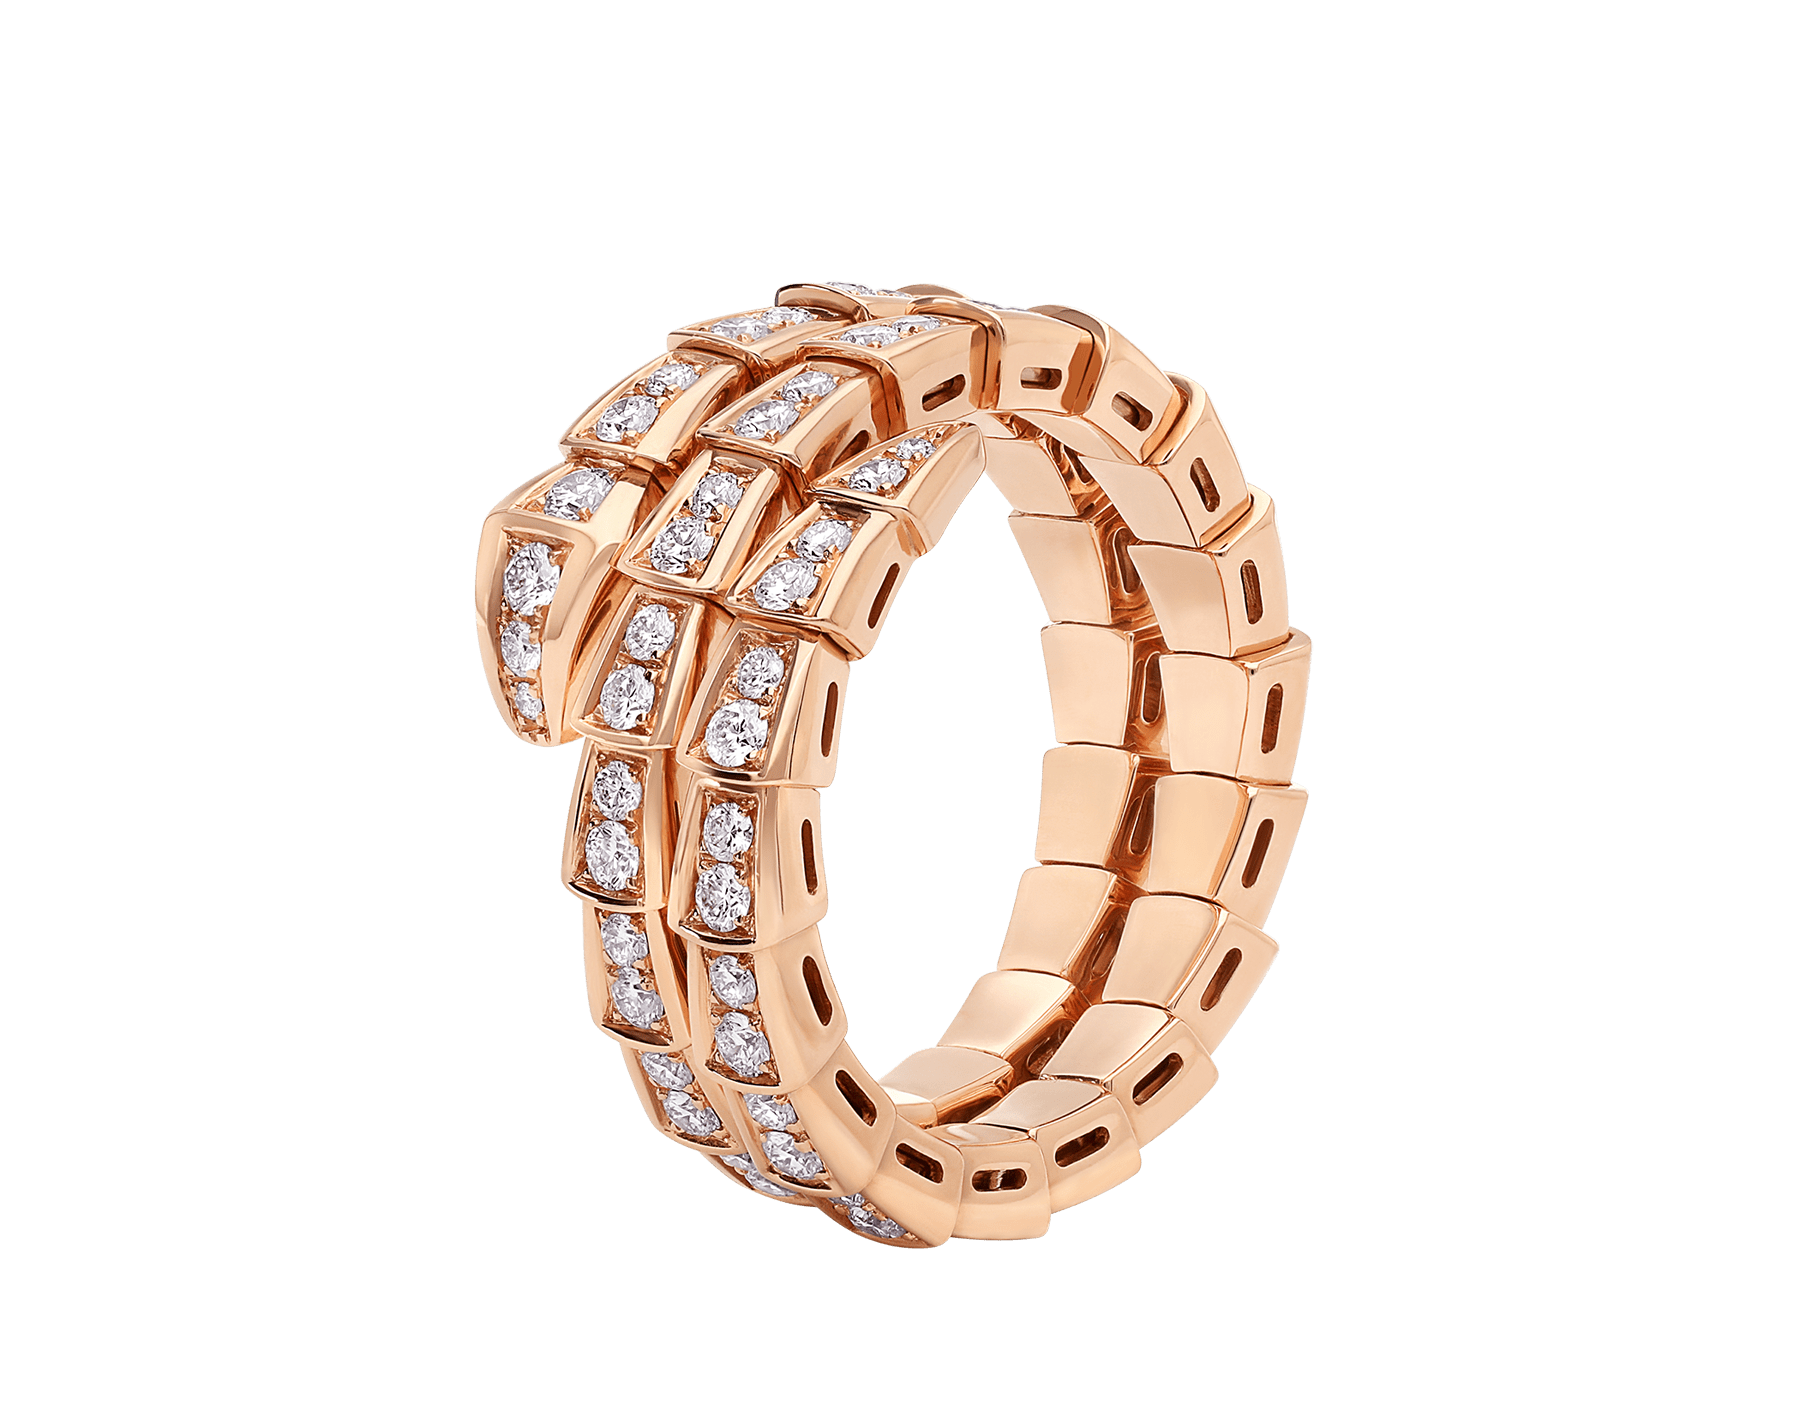 Serpenti Viper two-coil 18 kt rose gold ring, set with pavé diamonds AN858794 image 1